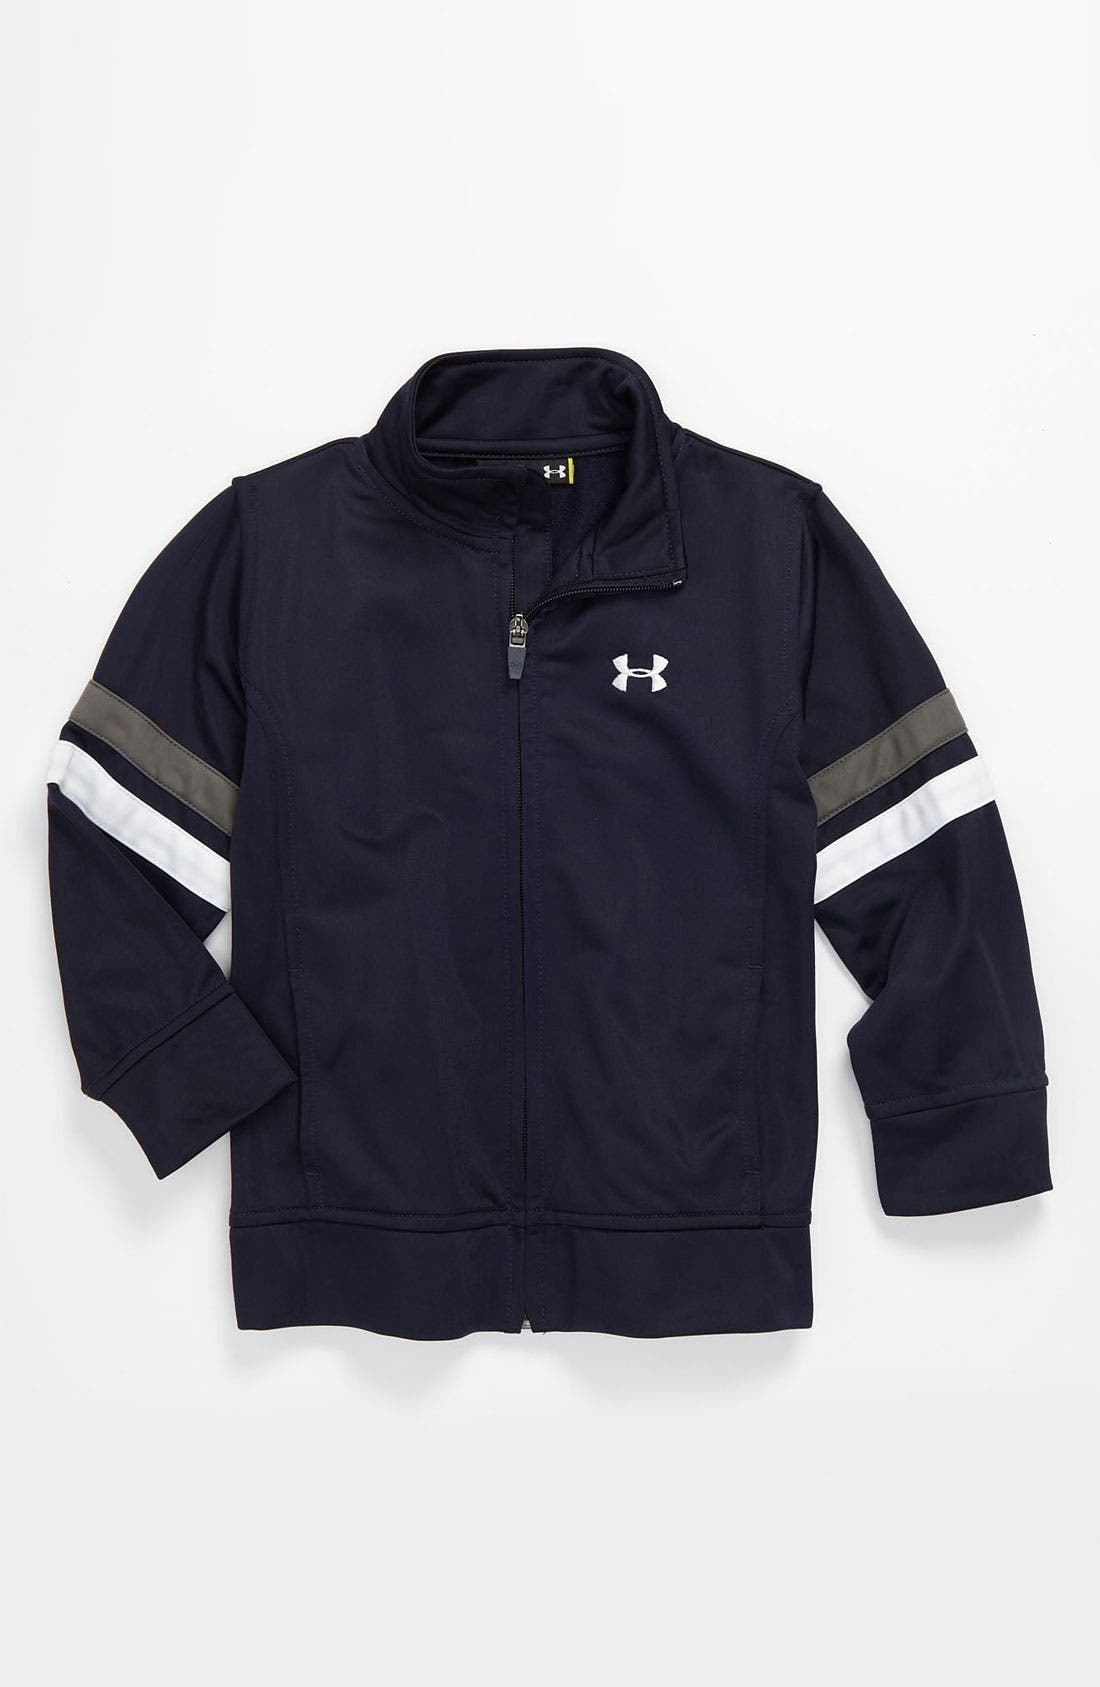 Main Image - Under Armour Warm-Up Jacket (Toddler)